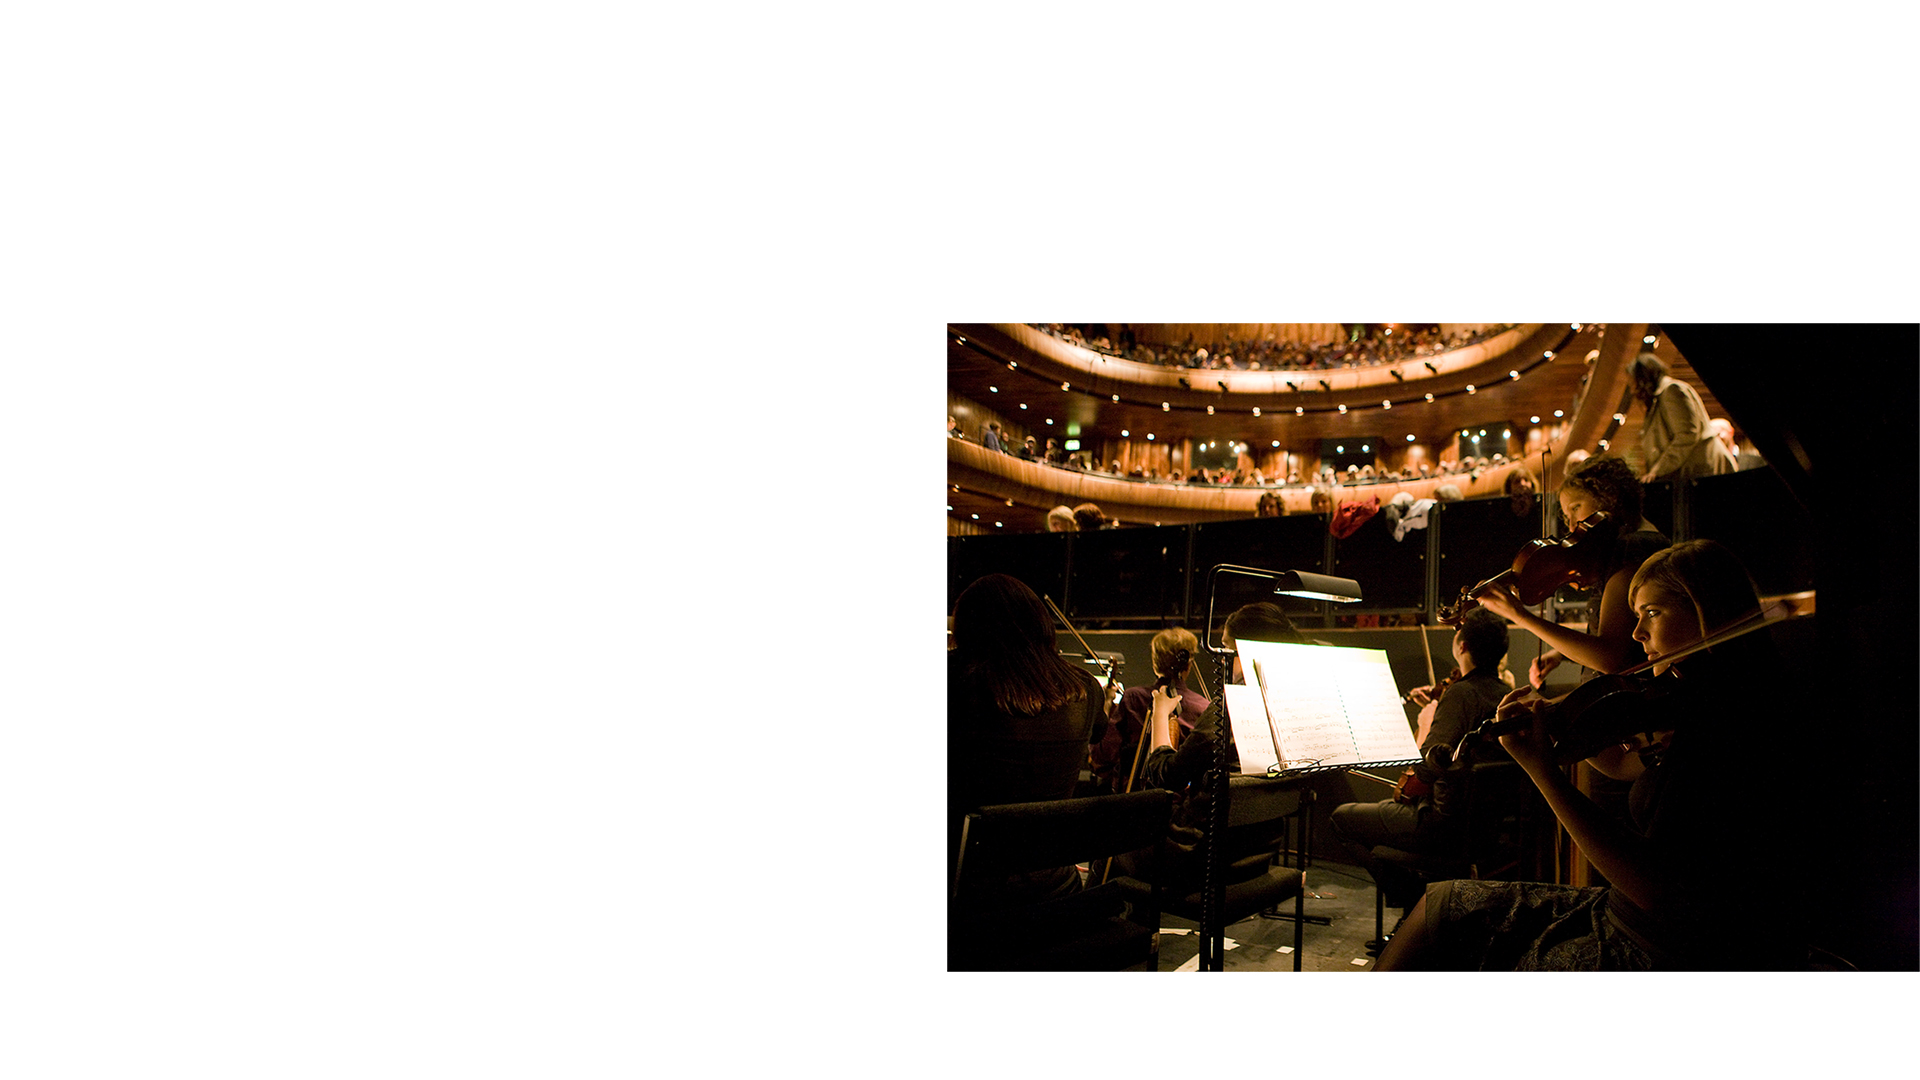 Musicians in the Orchestra Pit at the National Opera House Wexford Ireland